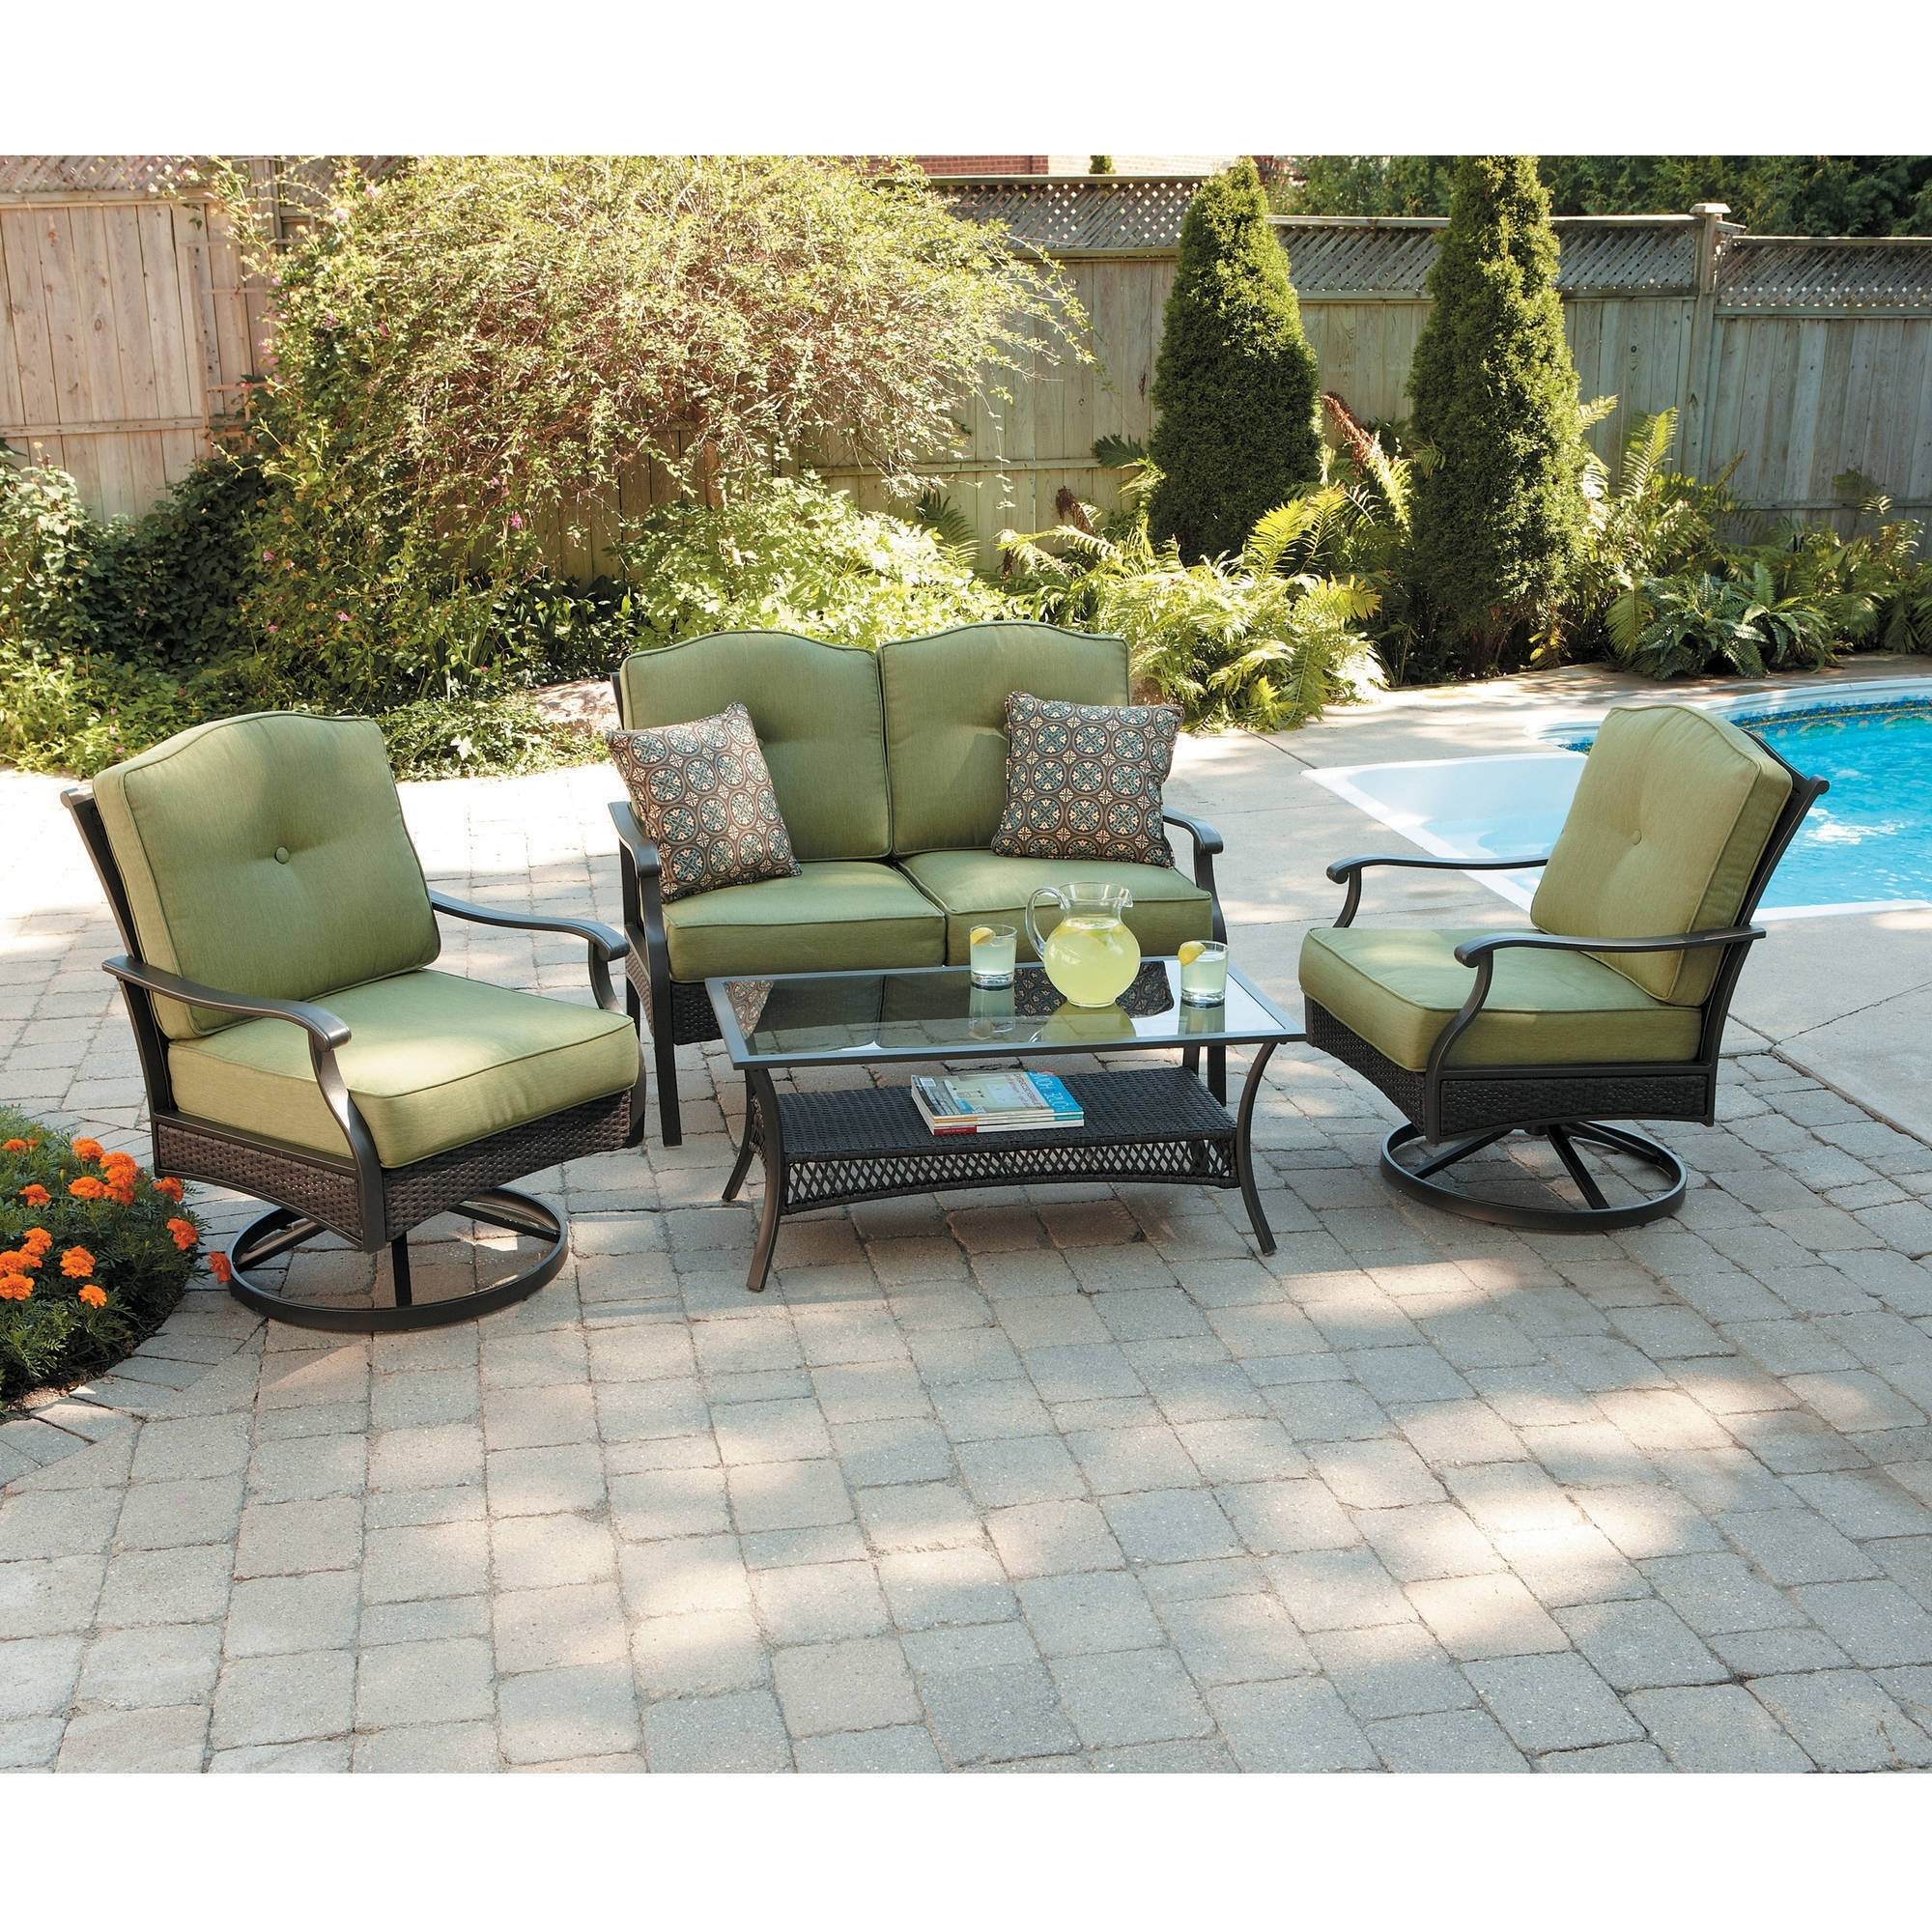 2018 Better Homes And Gardens Providence 4 Piece Patio Conversation Set Regarding Patio Conversation Sets With Storage (View 12 of 20)